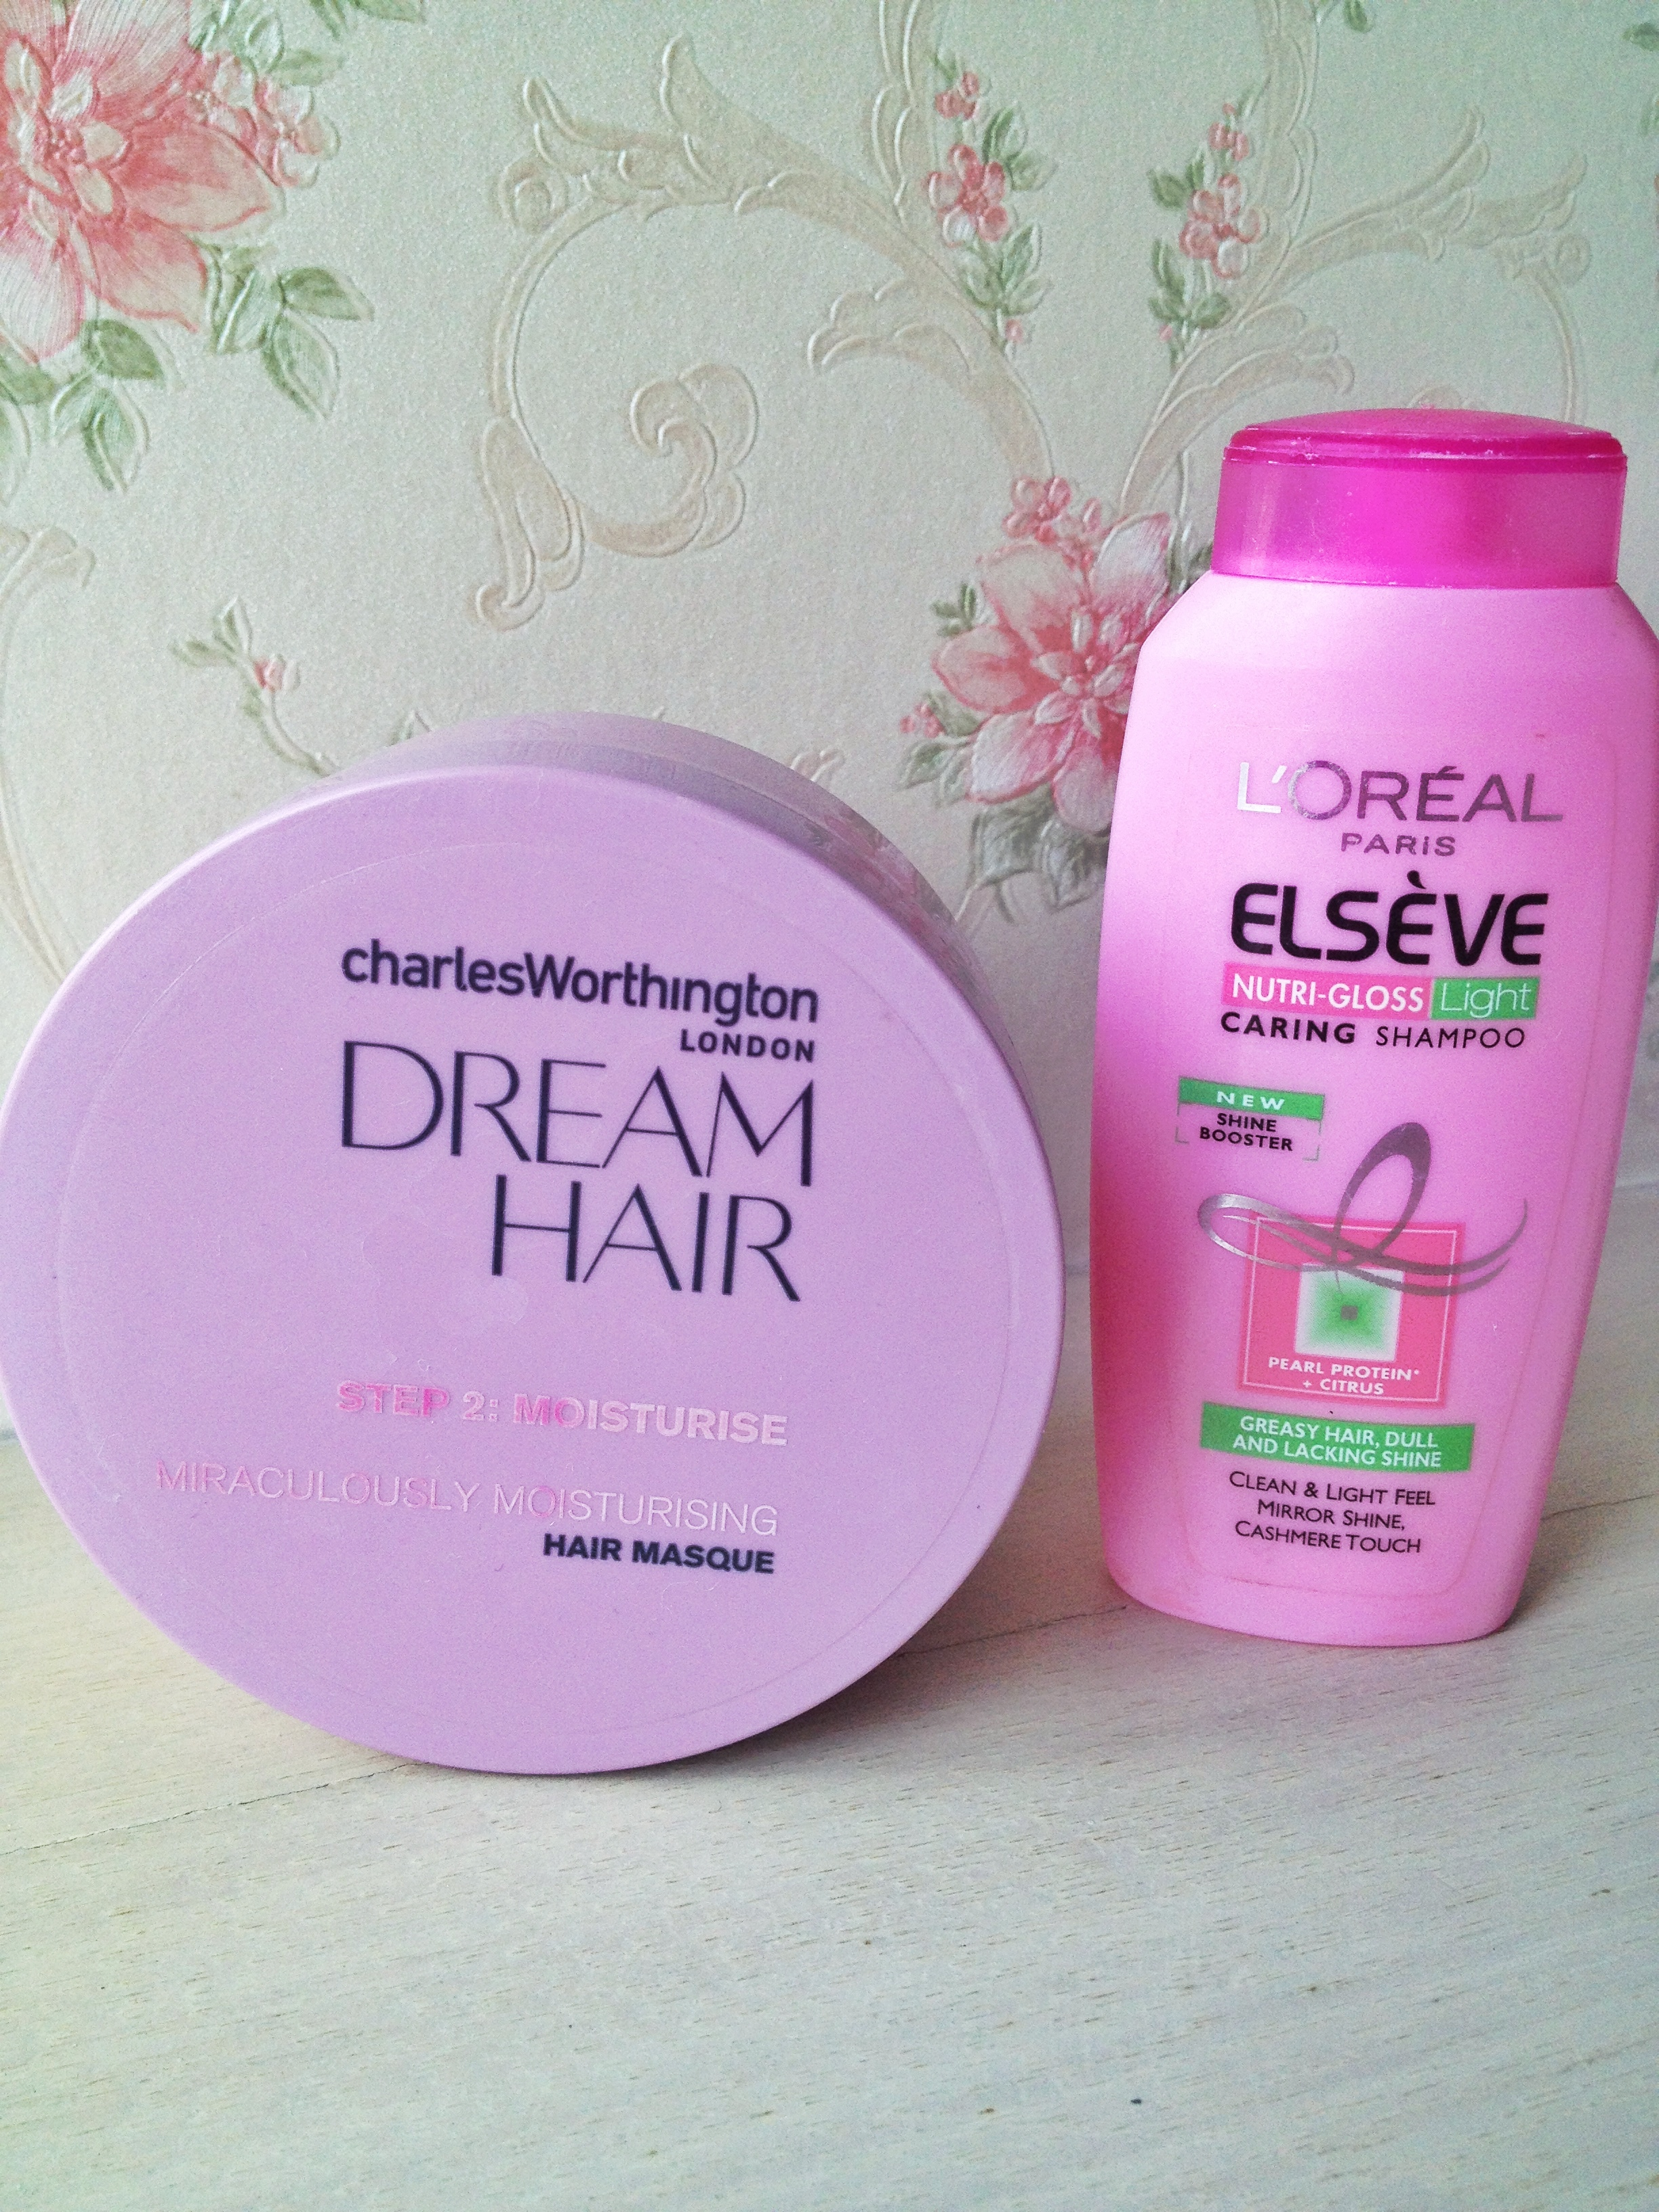 Hair All I Ever Wanted Ellips Vitamin Smooth Ampamp Shiny Sachet 6 Capsule 4 Charles Worthington Dream Masque